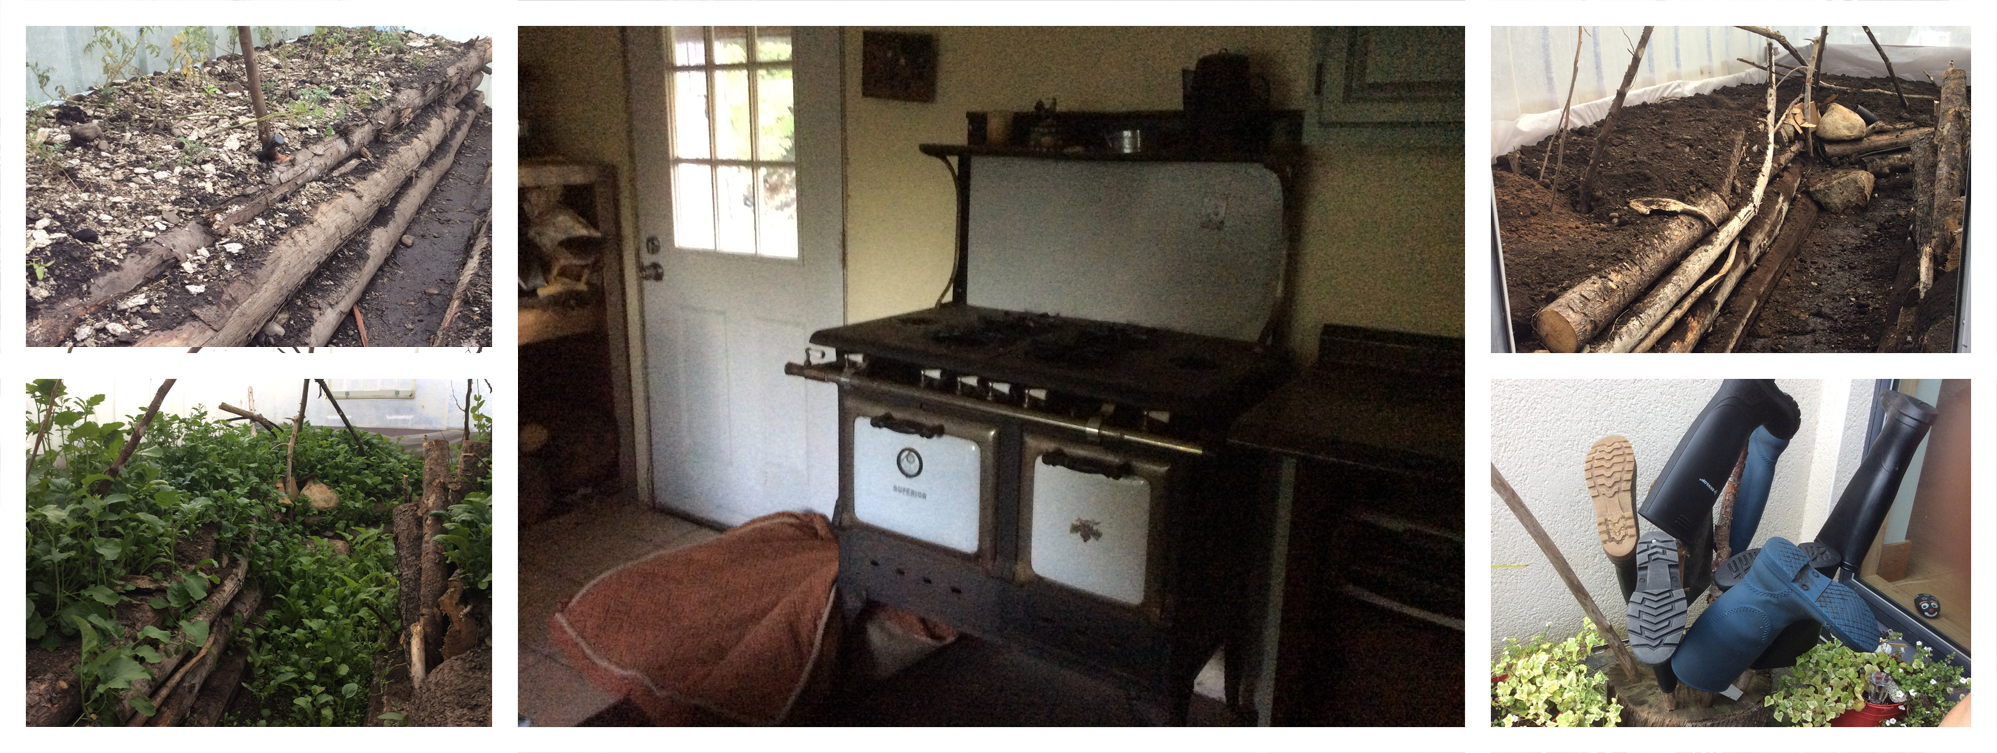 Amelia's greenhouse garden and wood cookstove